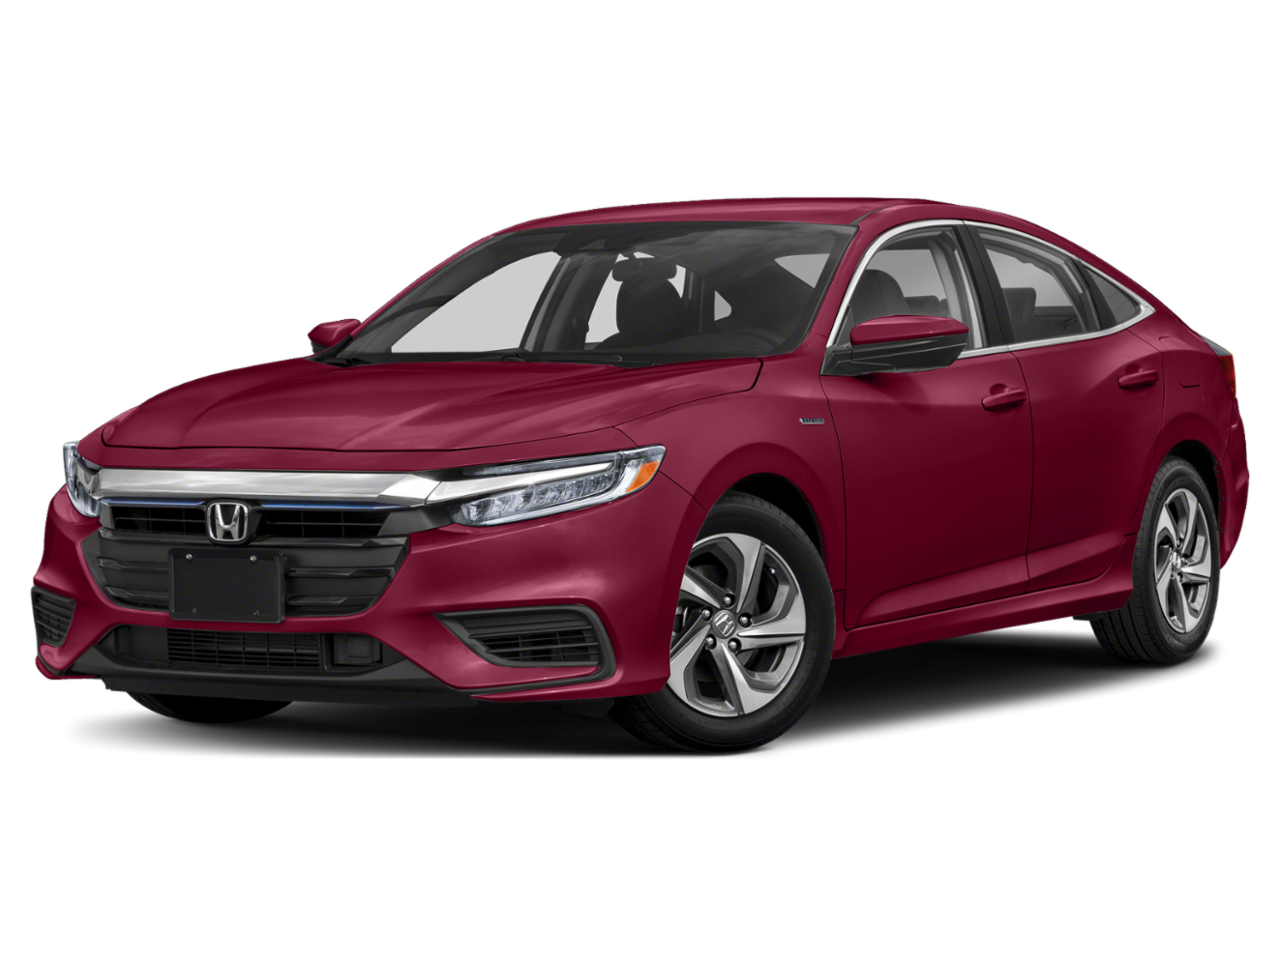 Honda 2020 Insight LX